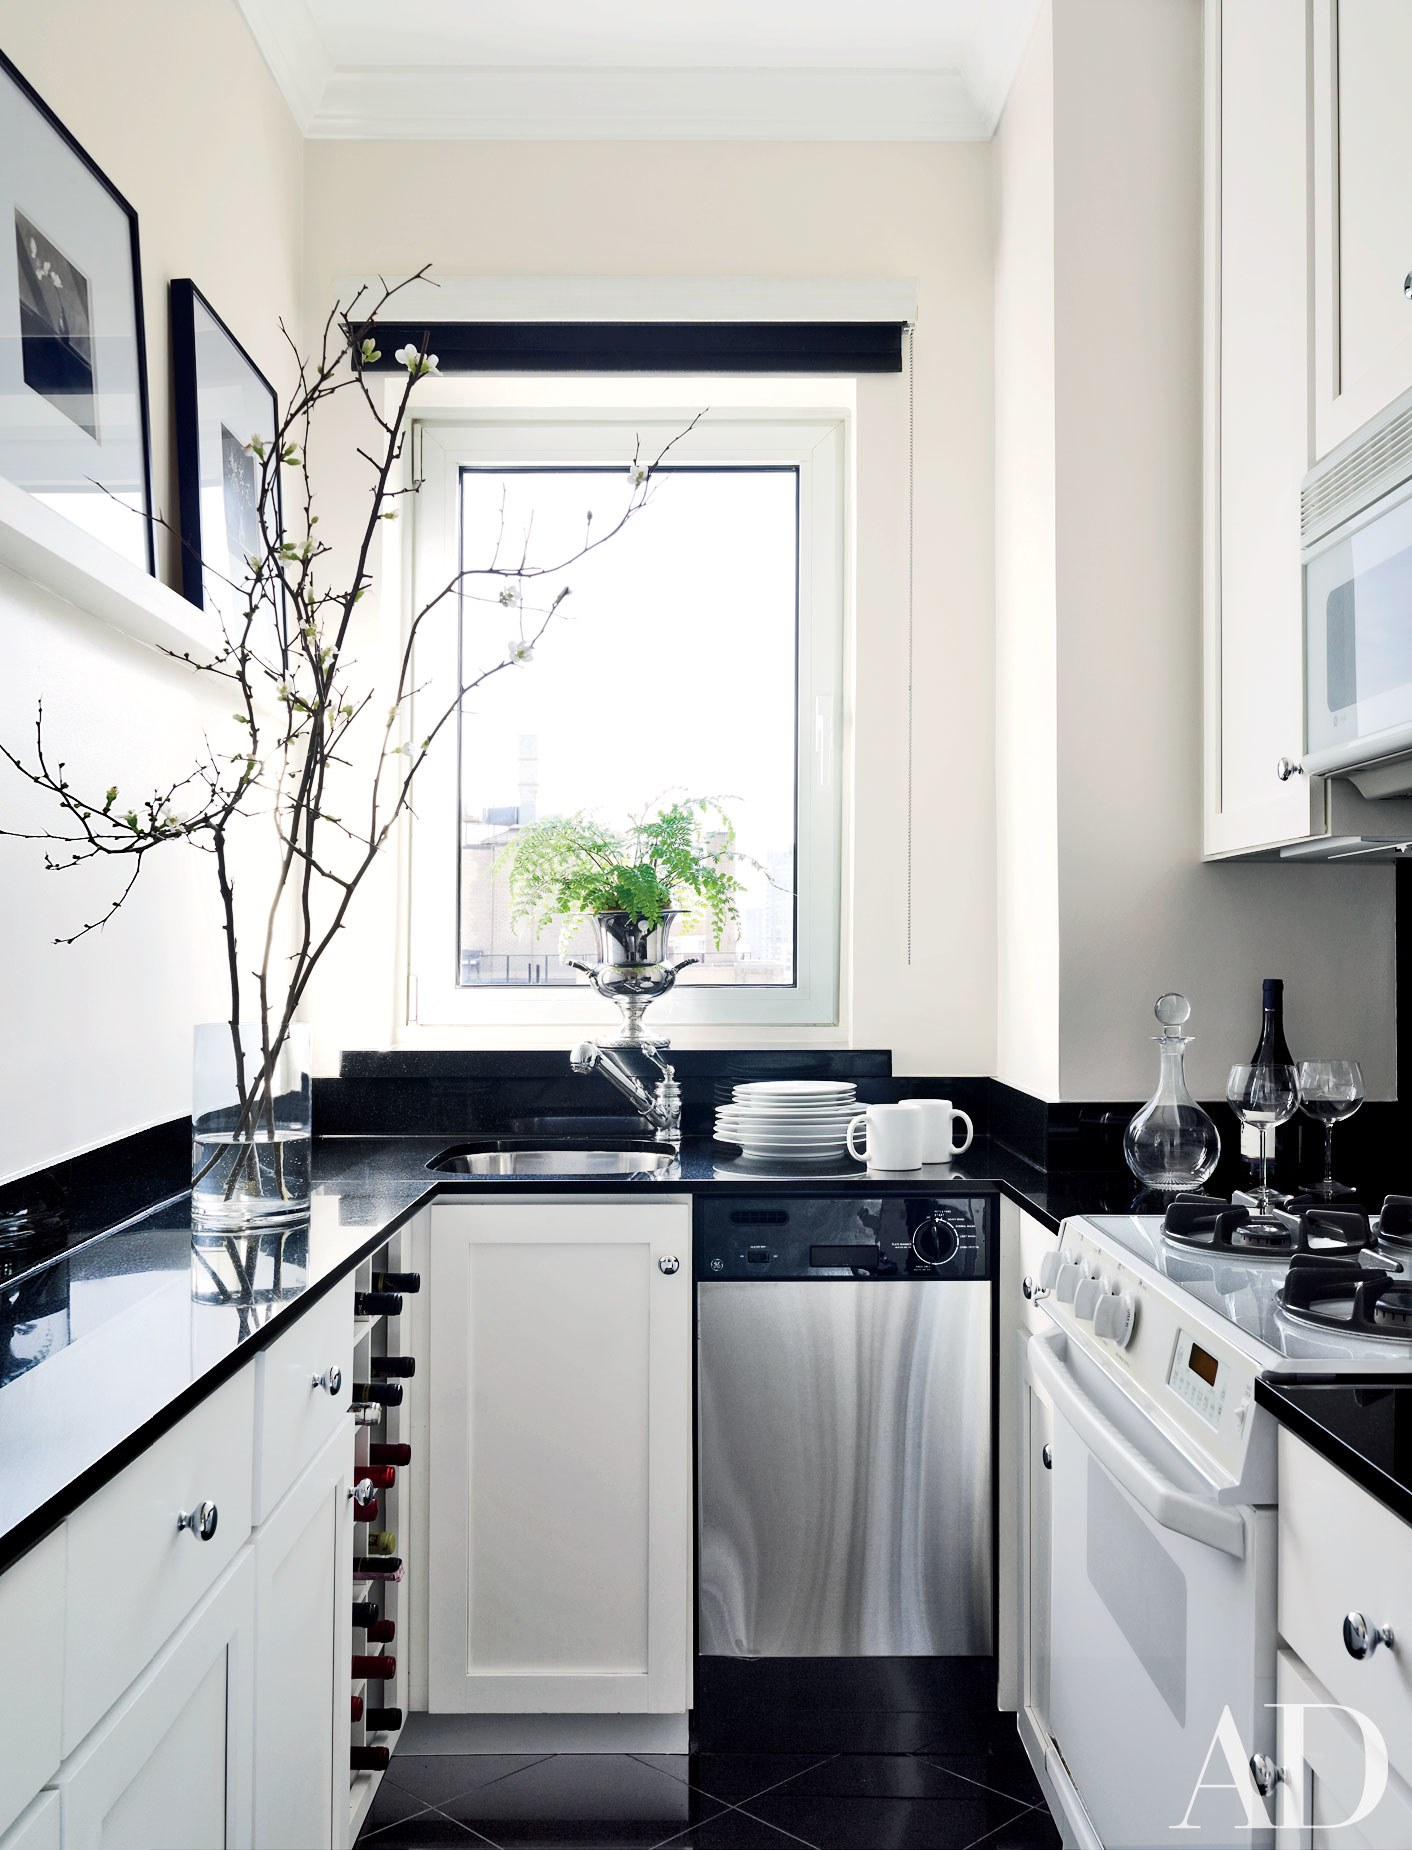 pBuiltin storage and appliances keep the countertops clear in this  Manhattan galley kitchen.p